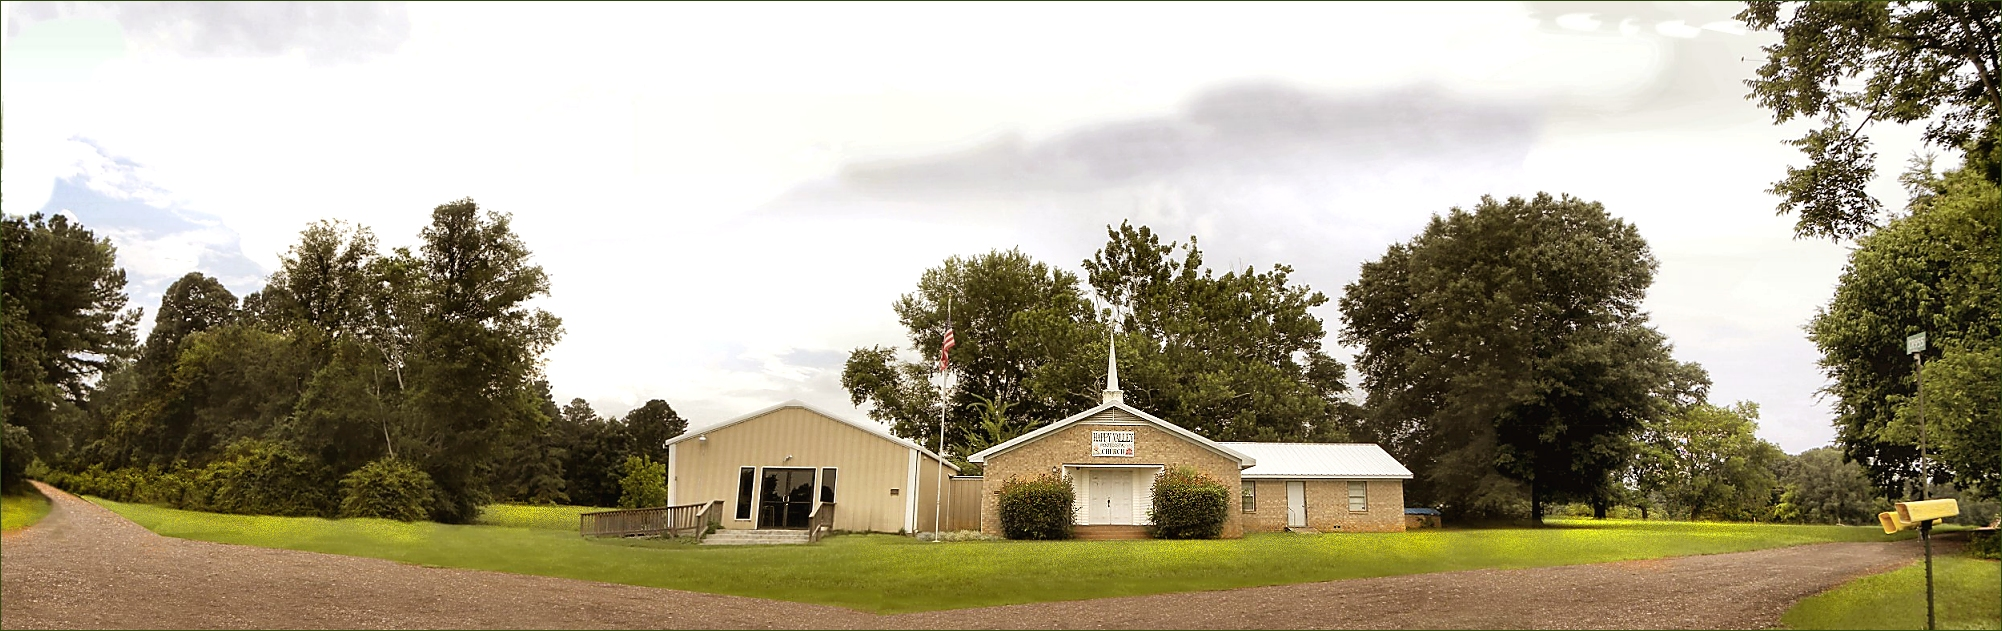 Happy Valley Pentecostal Church in Historic Nacogdoches County